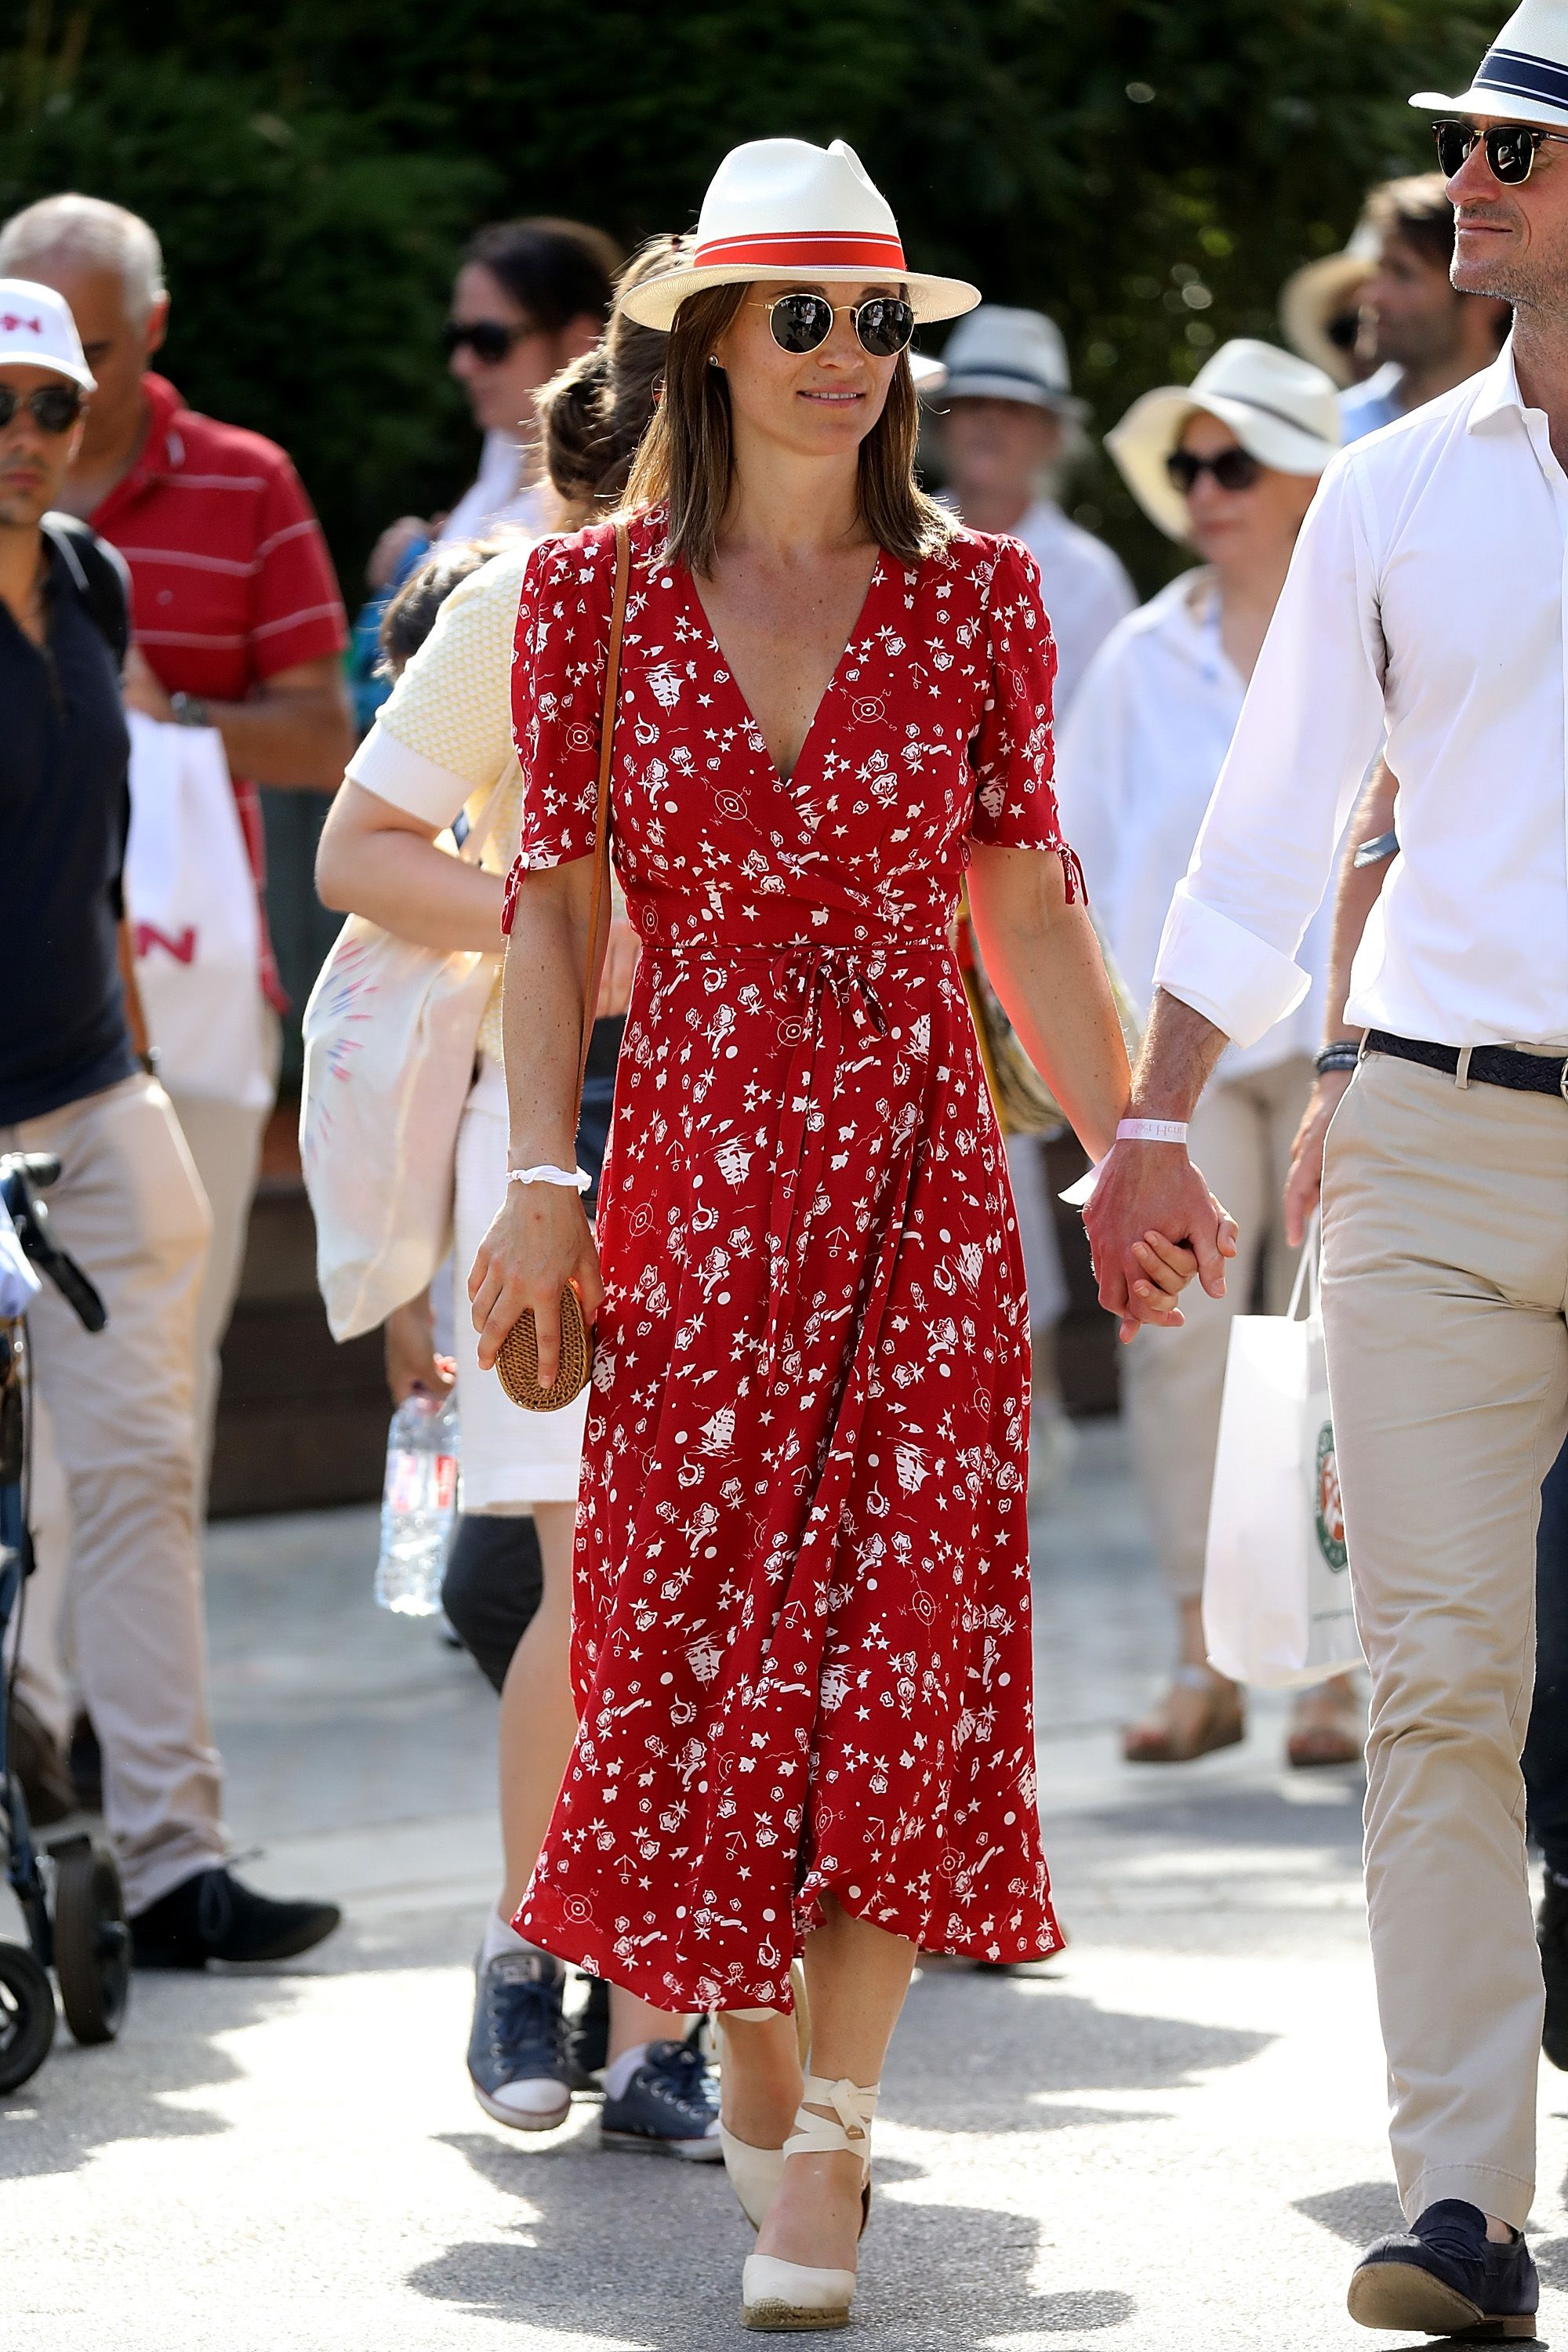 a26b718a5565c Pippa Middleton's Love for Wrap Dresses Goes All the Way Back to 2007